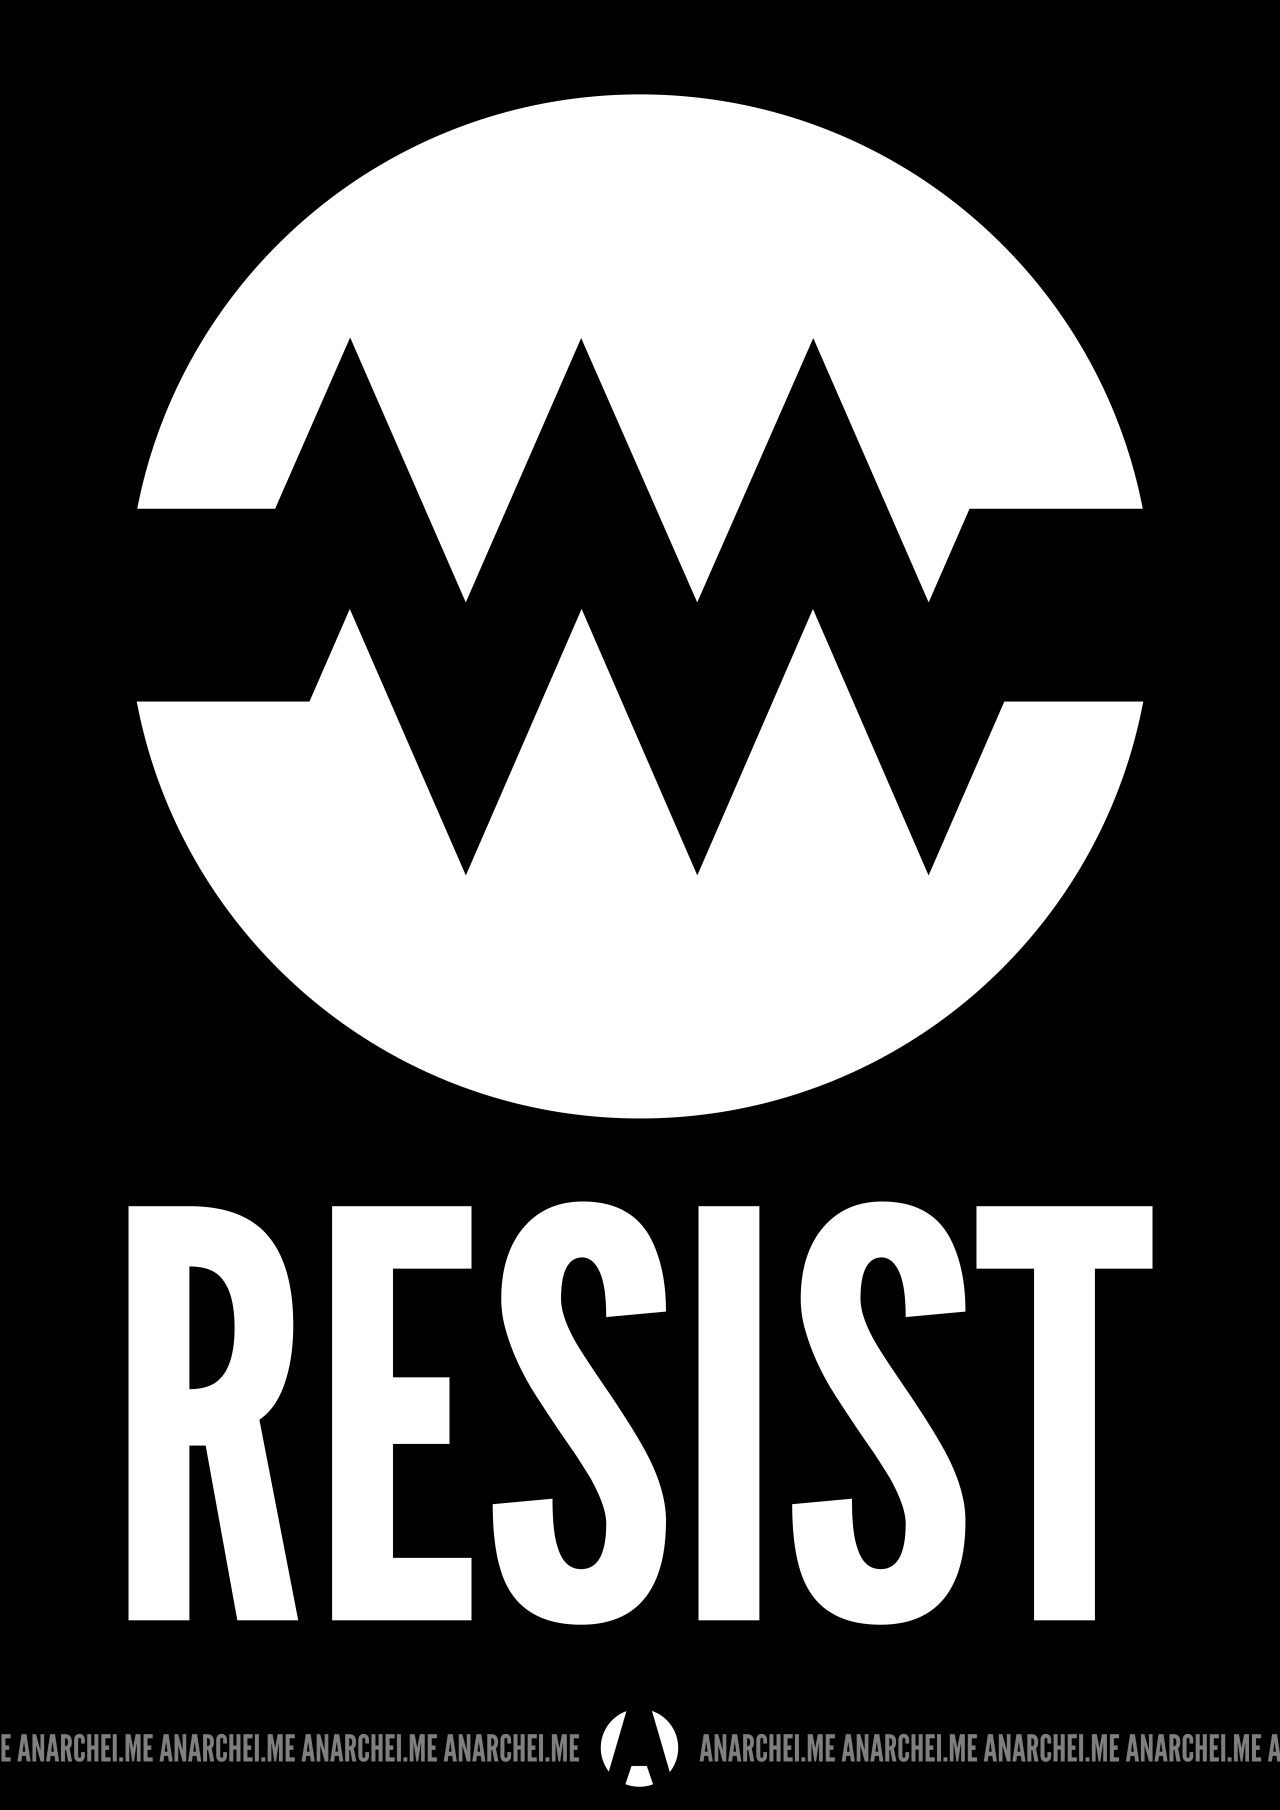 Component Resist Anarchei Symbol For Resistance In A Circuit Tumblr